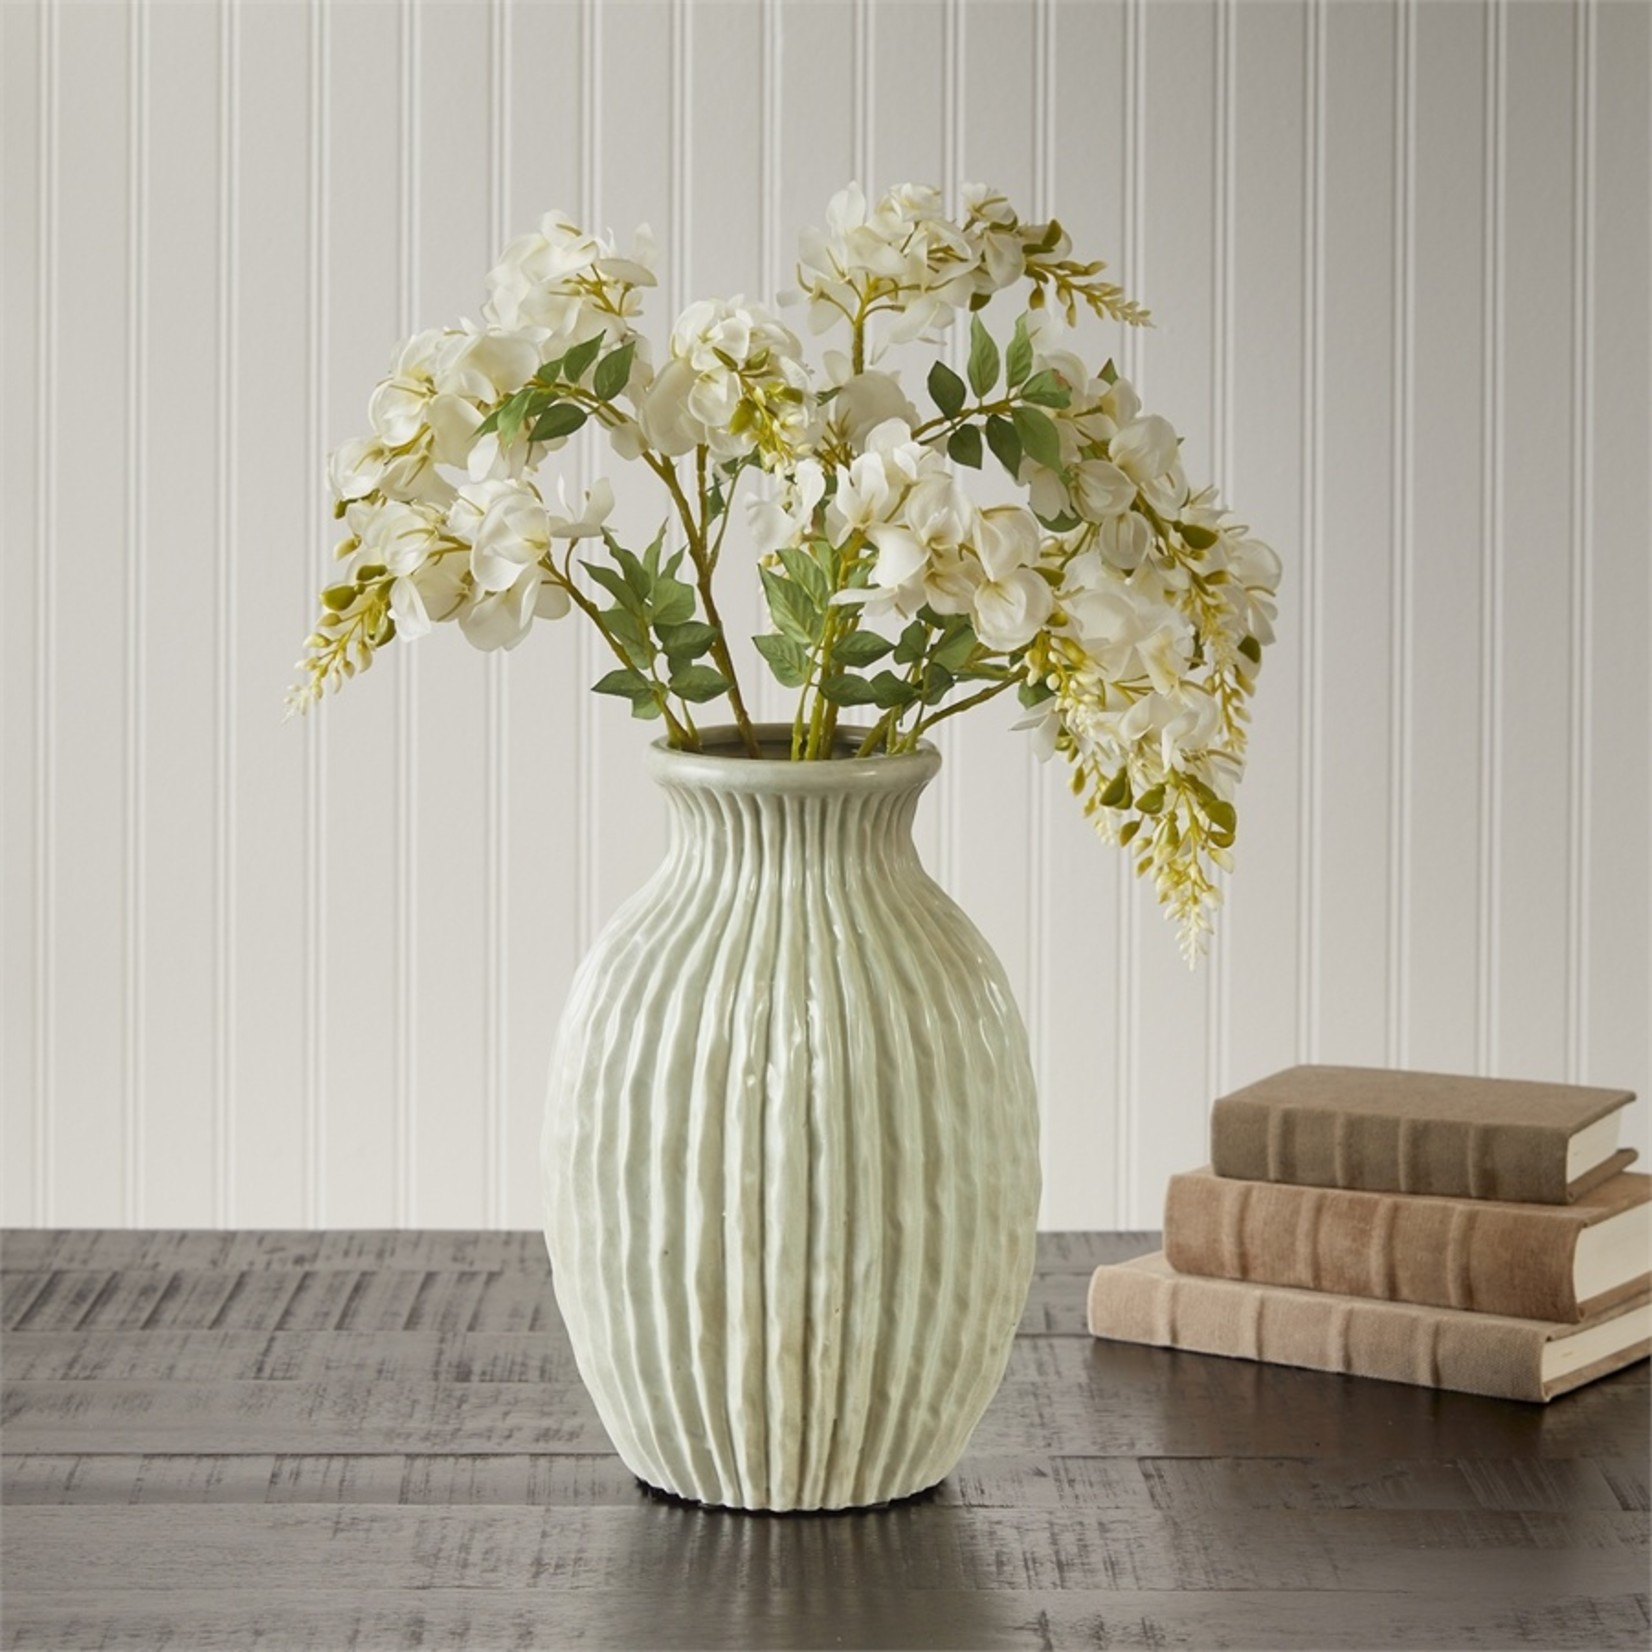 Napa Home and Garden Thessaly Vase